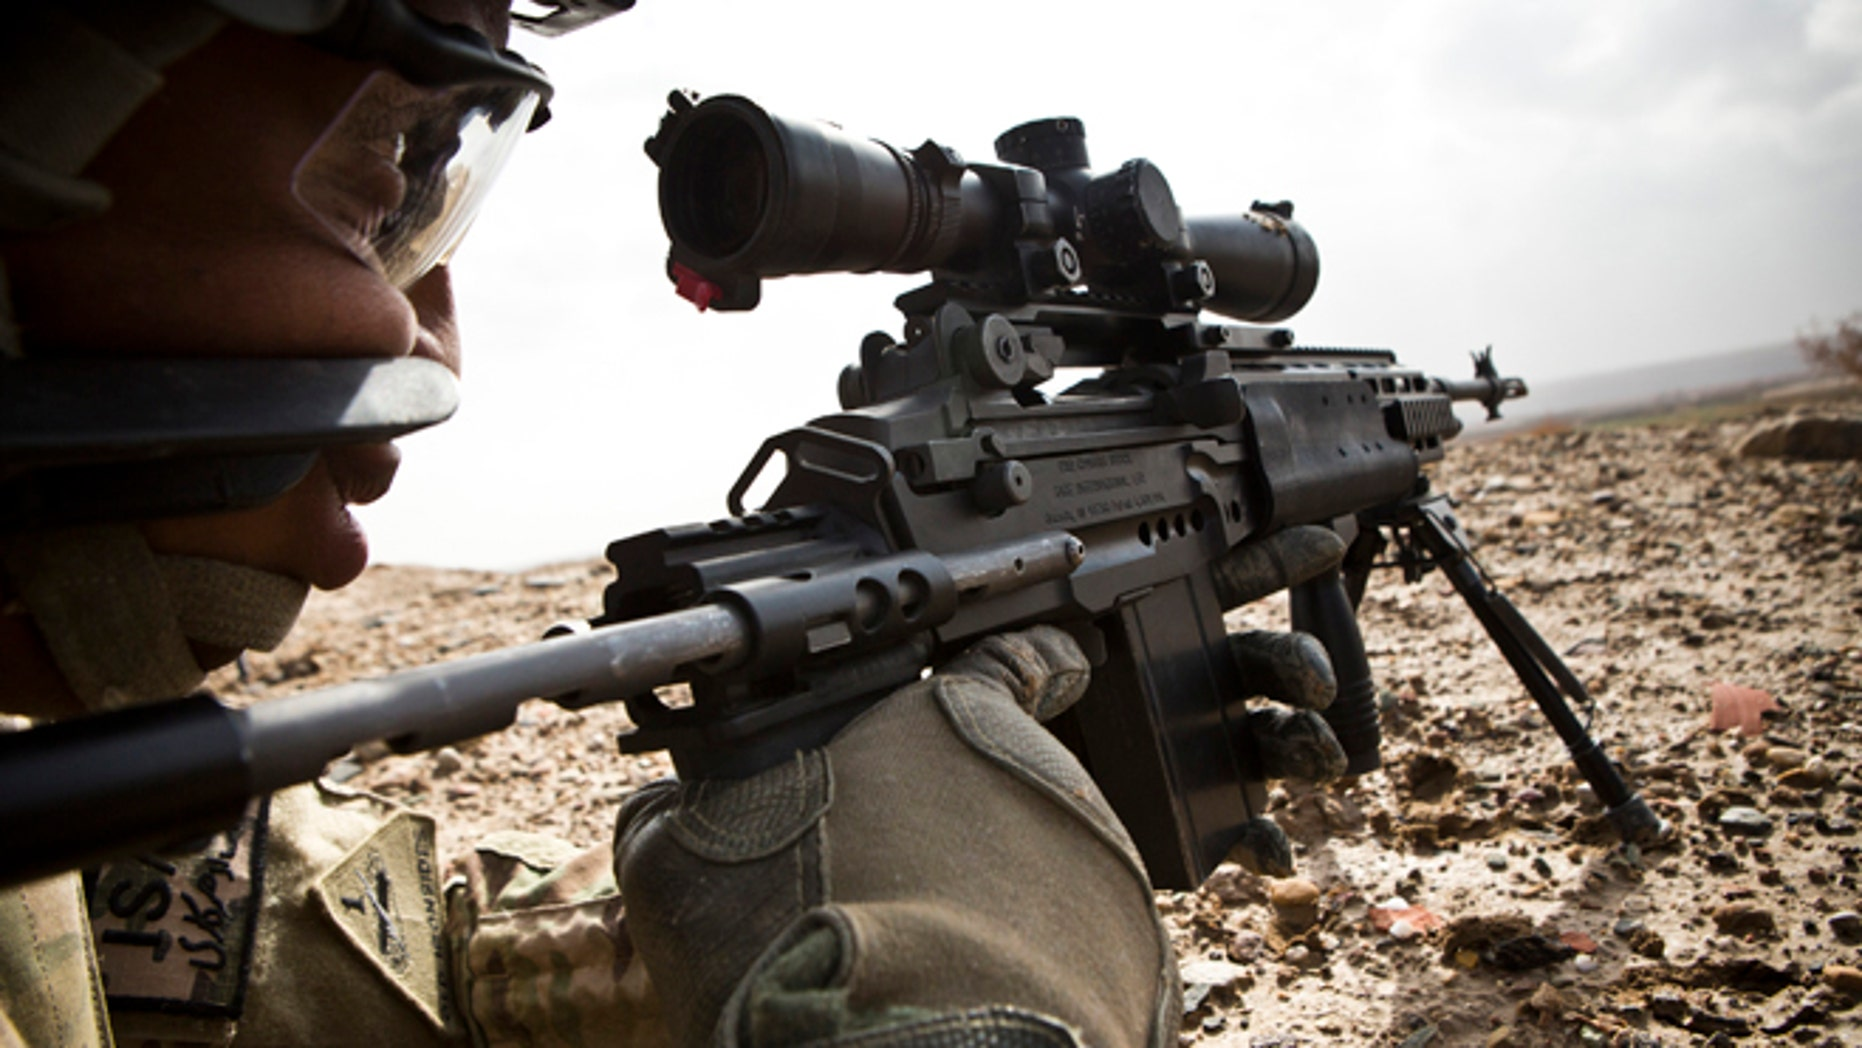 Feb. 3, 2013: A U.S. Army sniper with Charlie Company, 36th Infantry Regiment, 1st Armored Division looks down the scope of his rifle during a mission near Command Outpost Pa'in Kalay in Maiwand District, Kandahar Province.